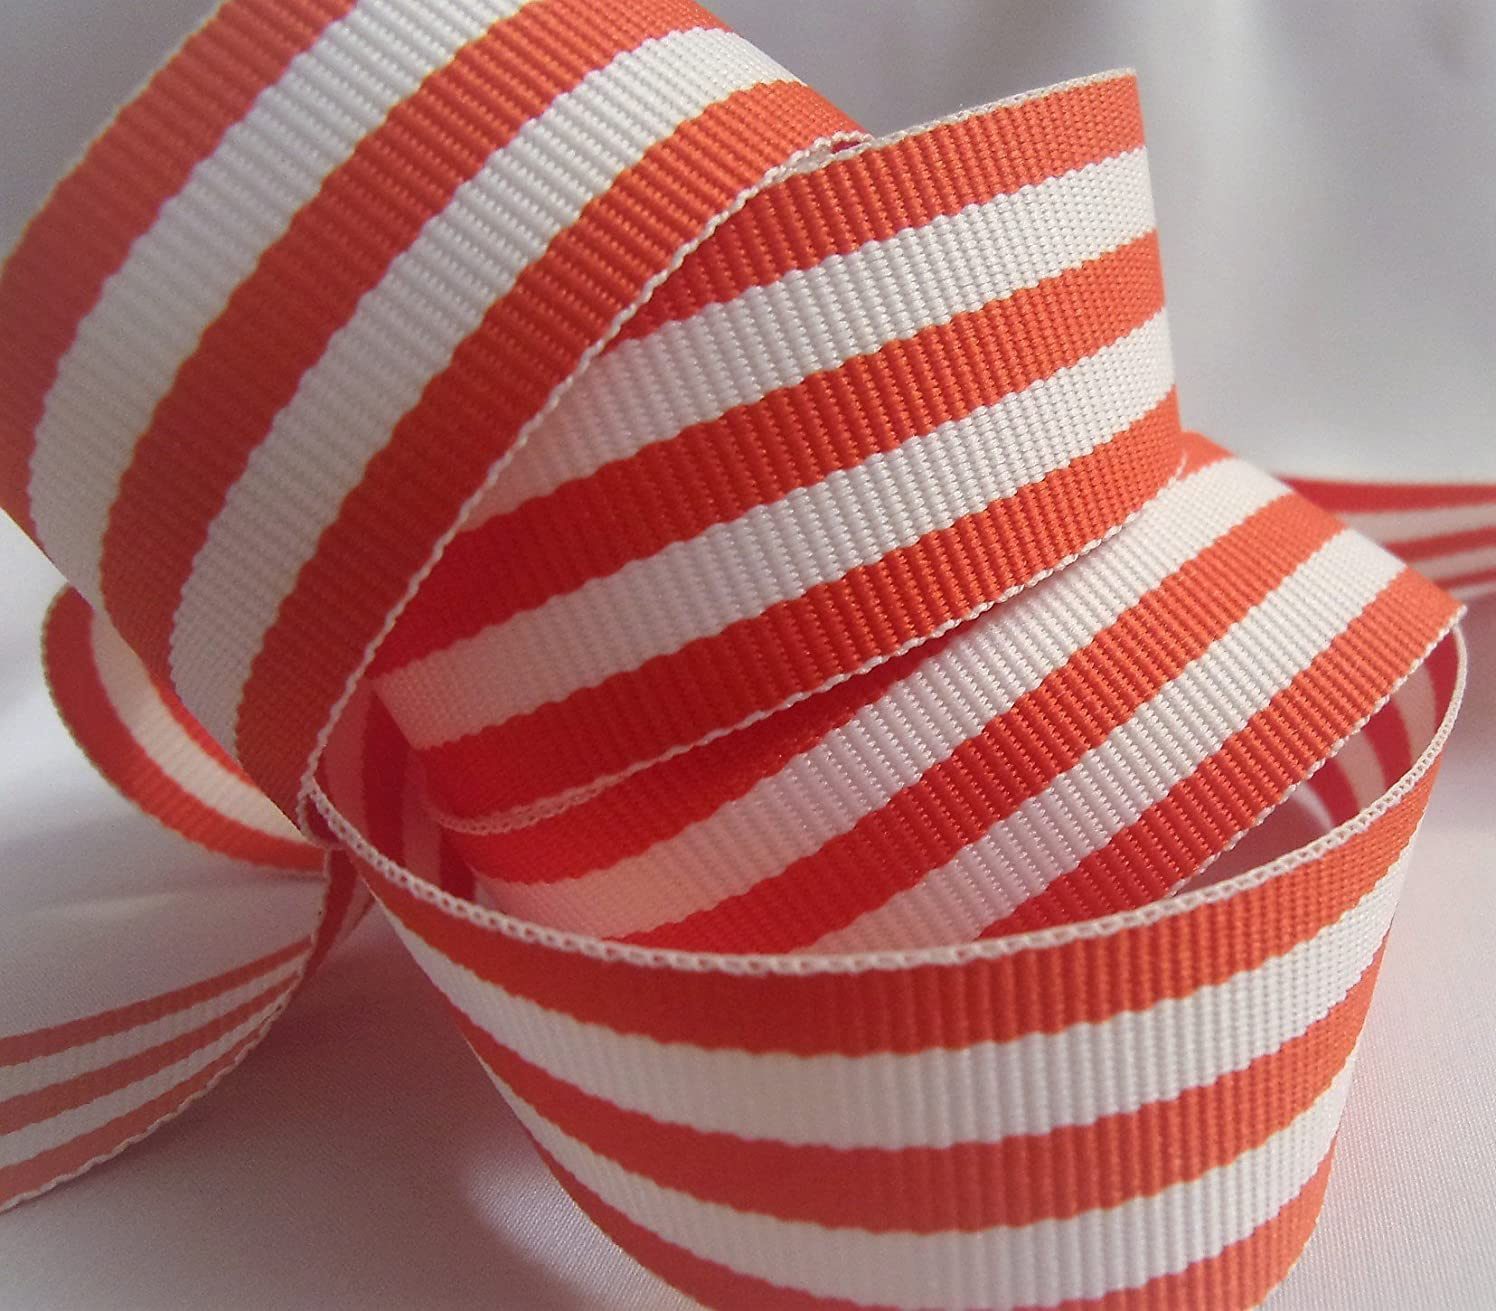 Grosgrain Ribbon - Orange and White Stripes - 7/8